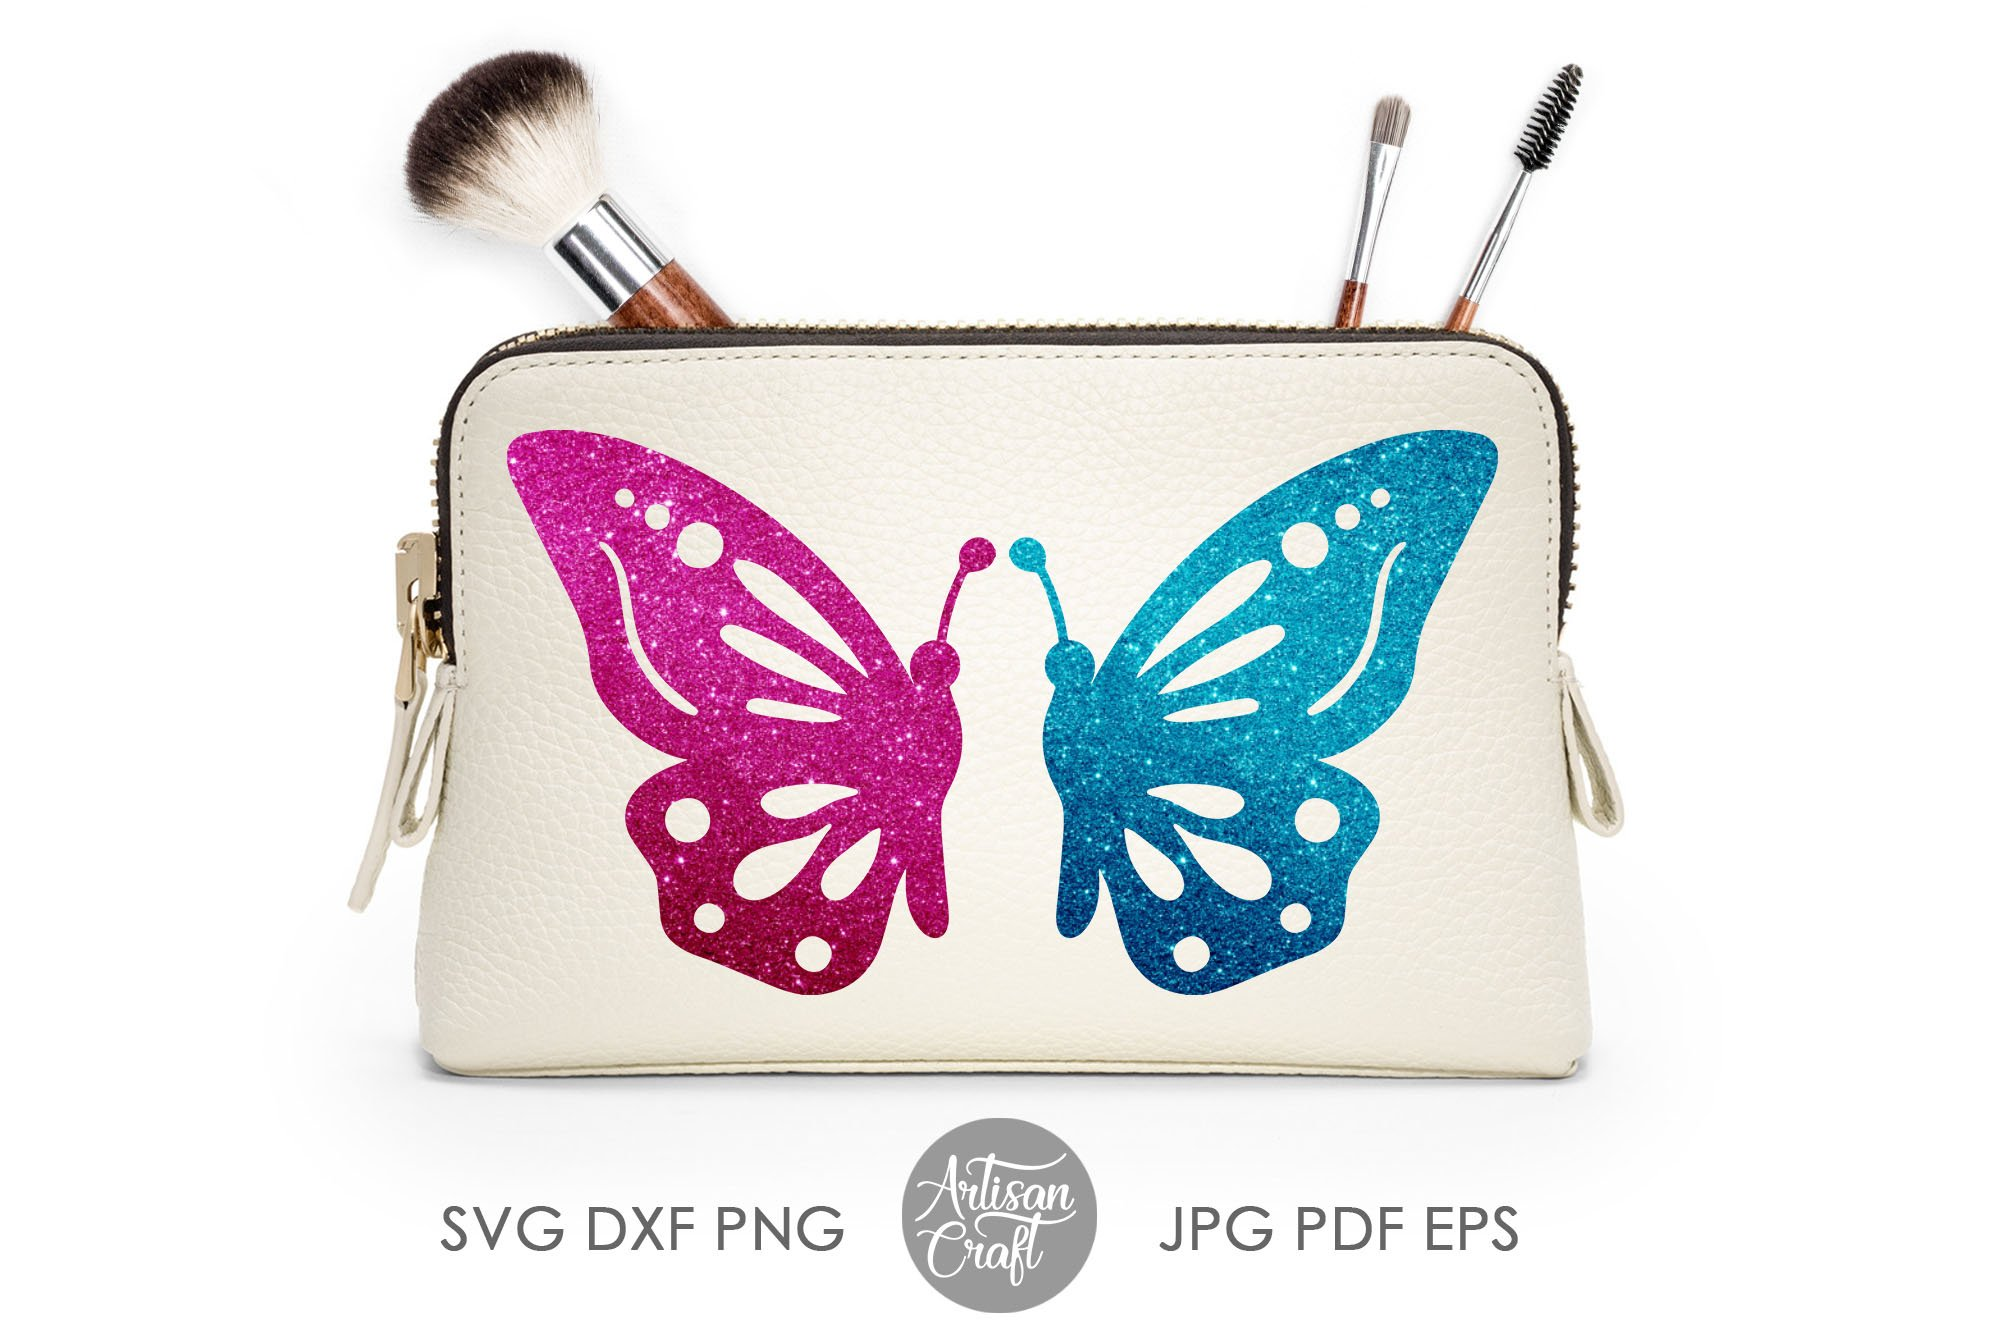 Butterfly clipart, butterfly SVG, cut files, layered svg example image 3